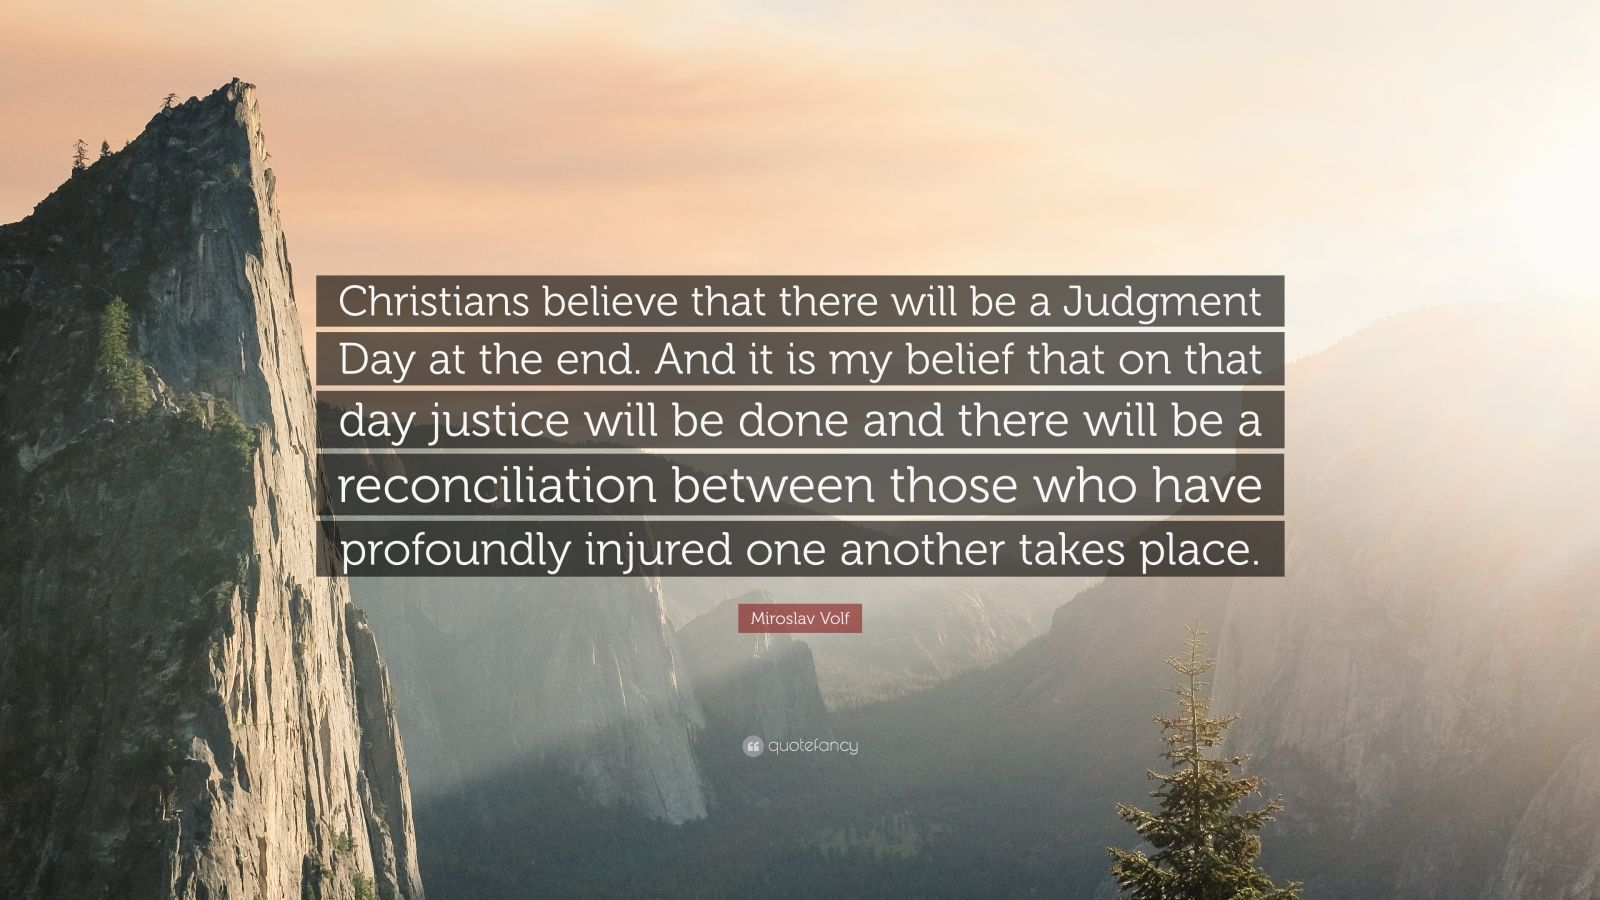 """Miroslav Volf Quote: """"Christians believe that there will be a Judgment Day at the end. And it is my belief that on that day justice will be done and there will be a reconciliation between those who have profoundly injured one another takes place."""""""